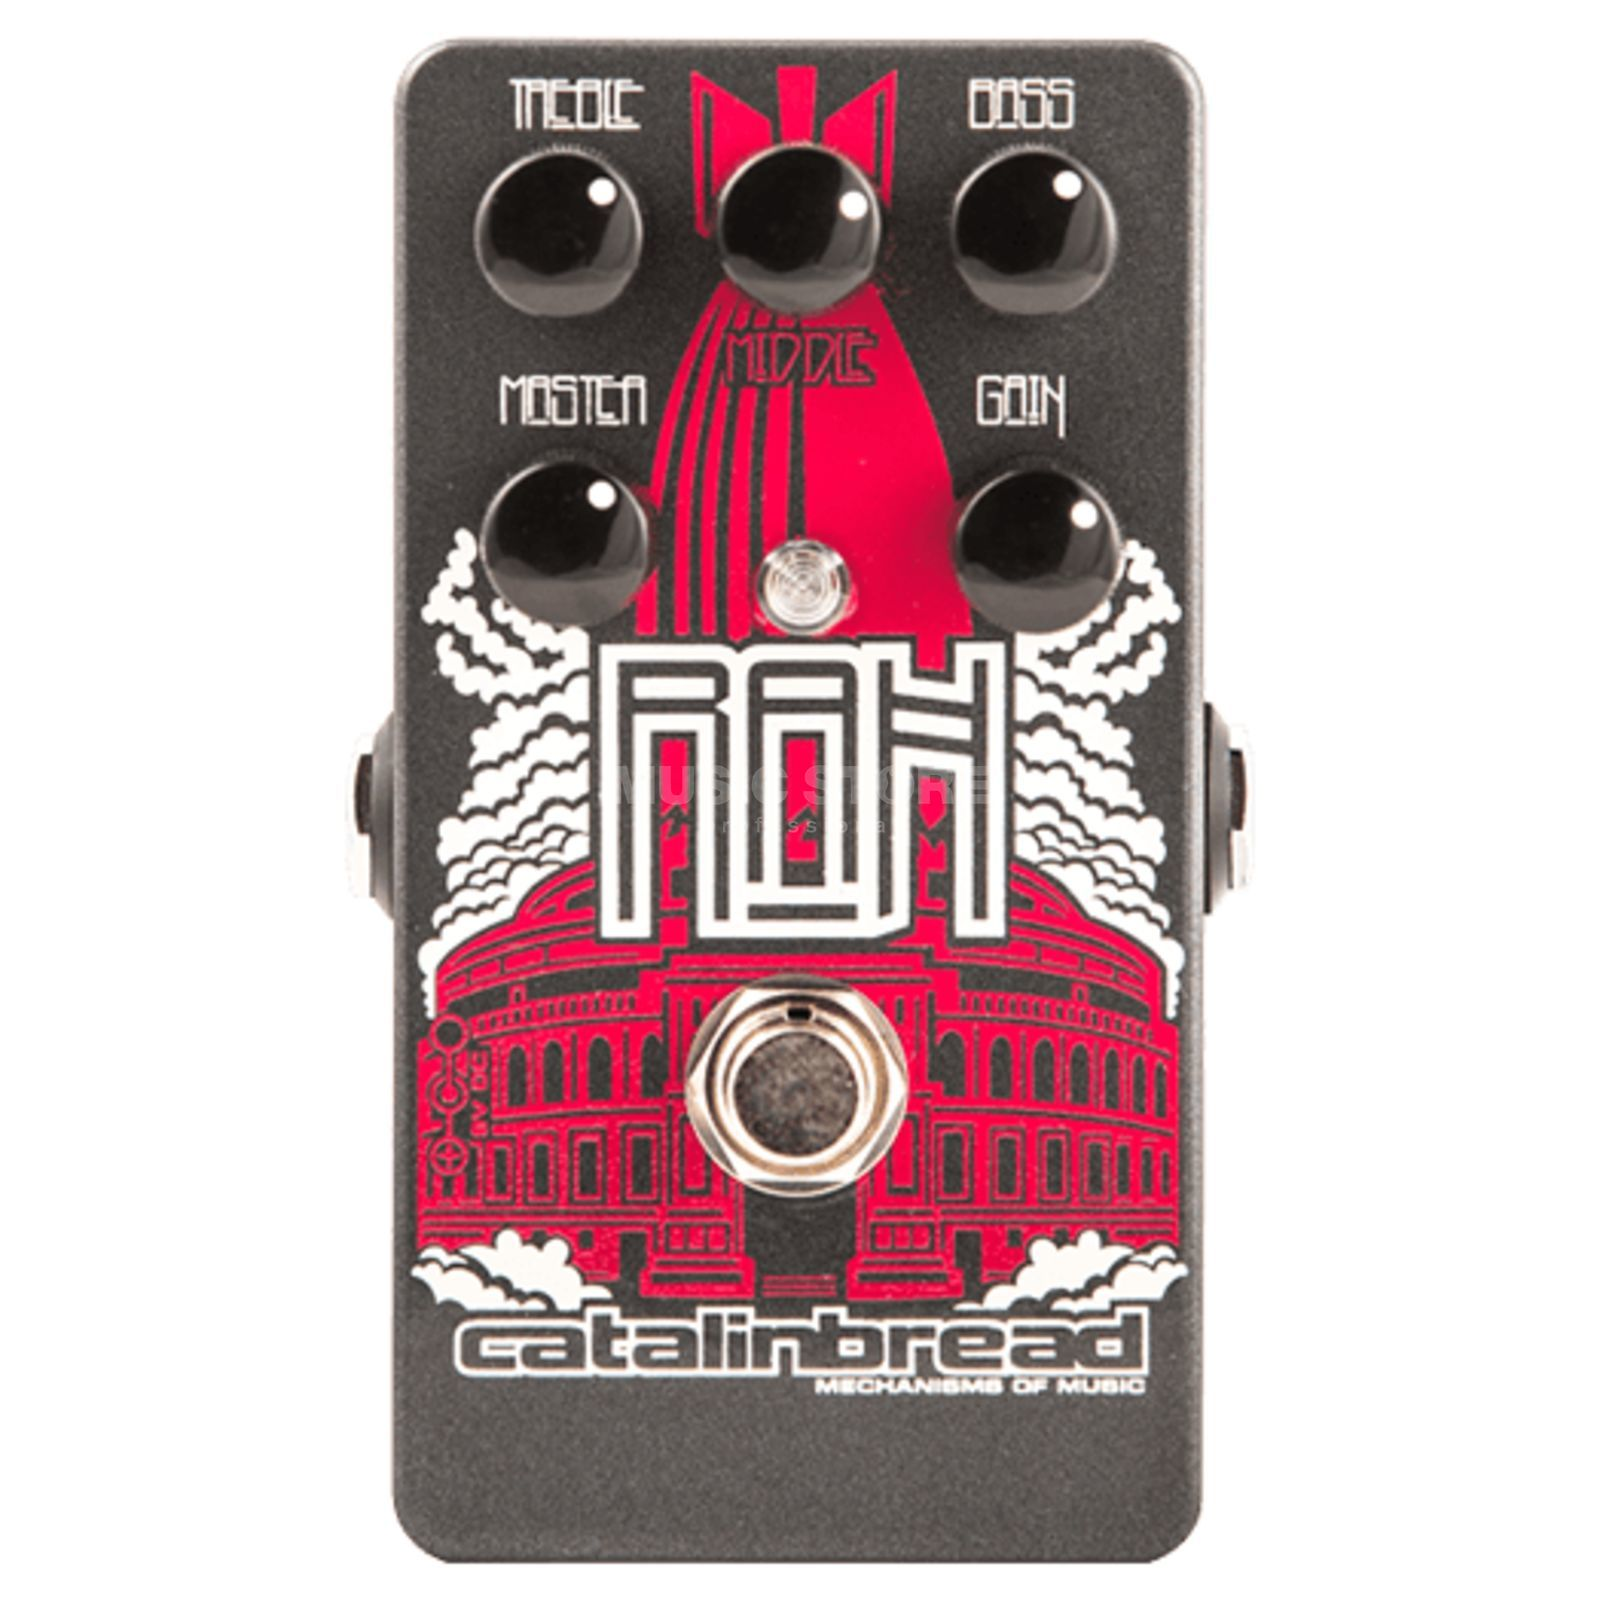 Catalinbread RAH Royal Albert Hall Overdrive Produktbild